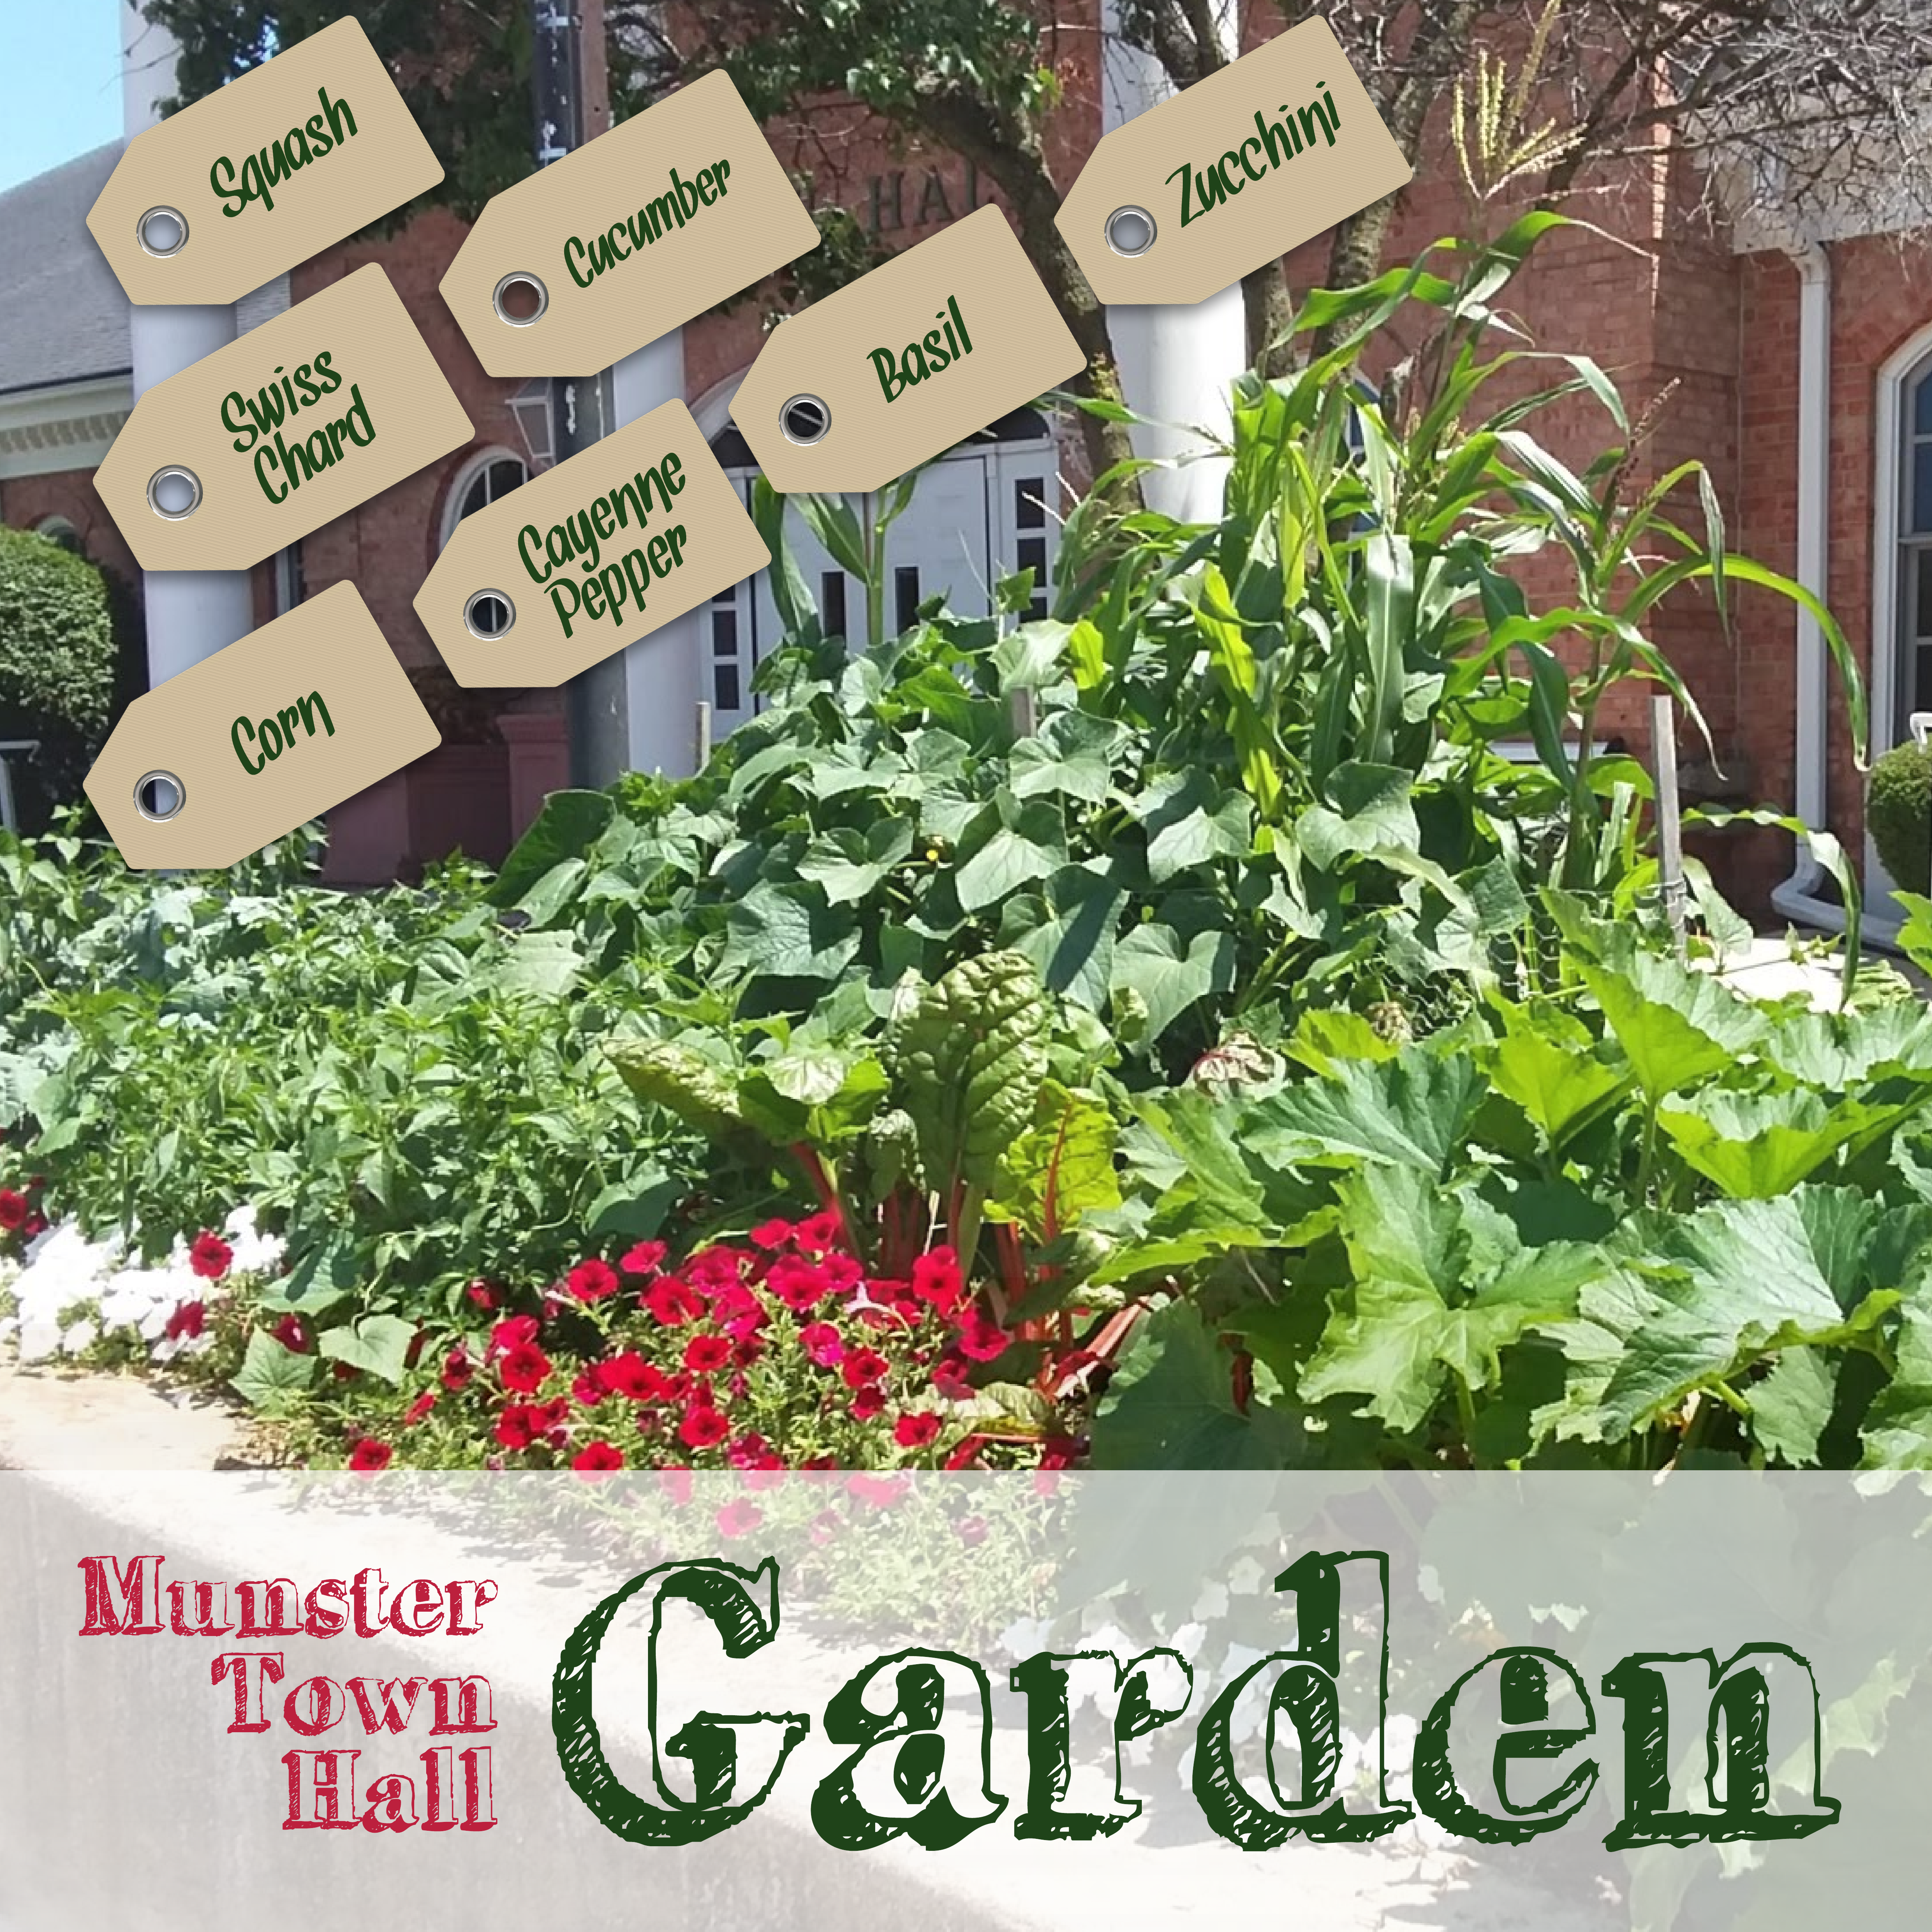 Image for news story: Town of Munster Edible Landscape Garden is ripe for the picking